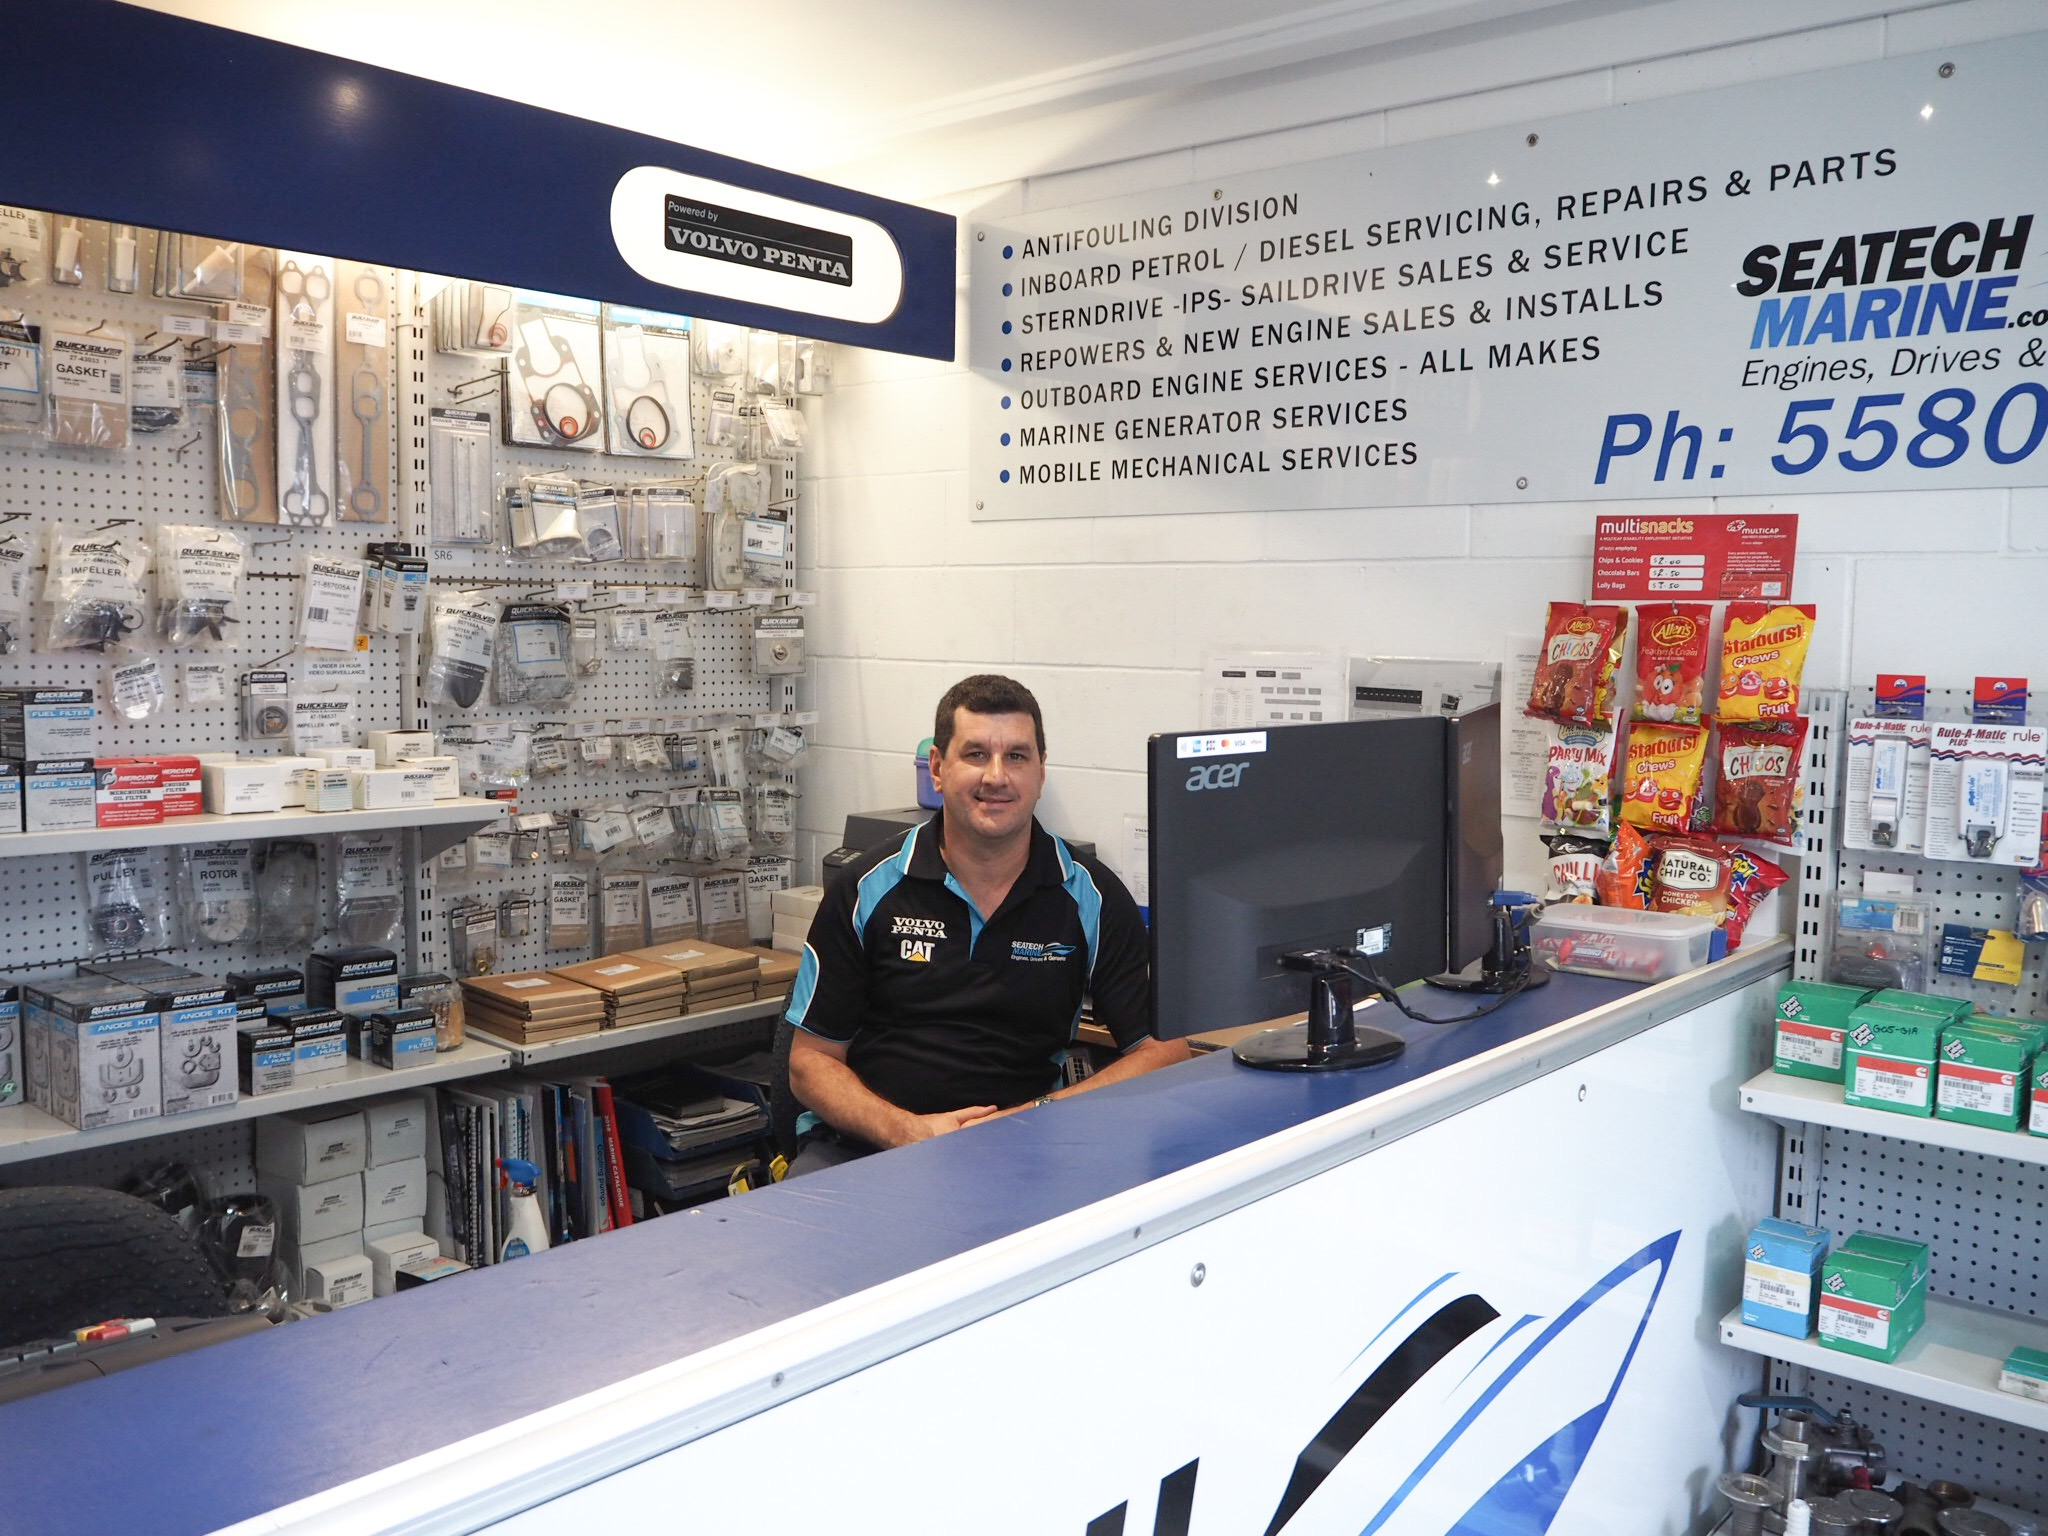 Meet Jon Southall, our Parts Manager